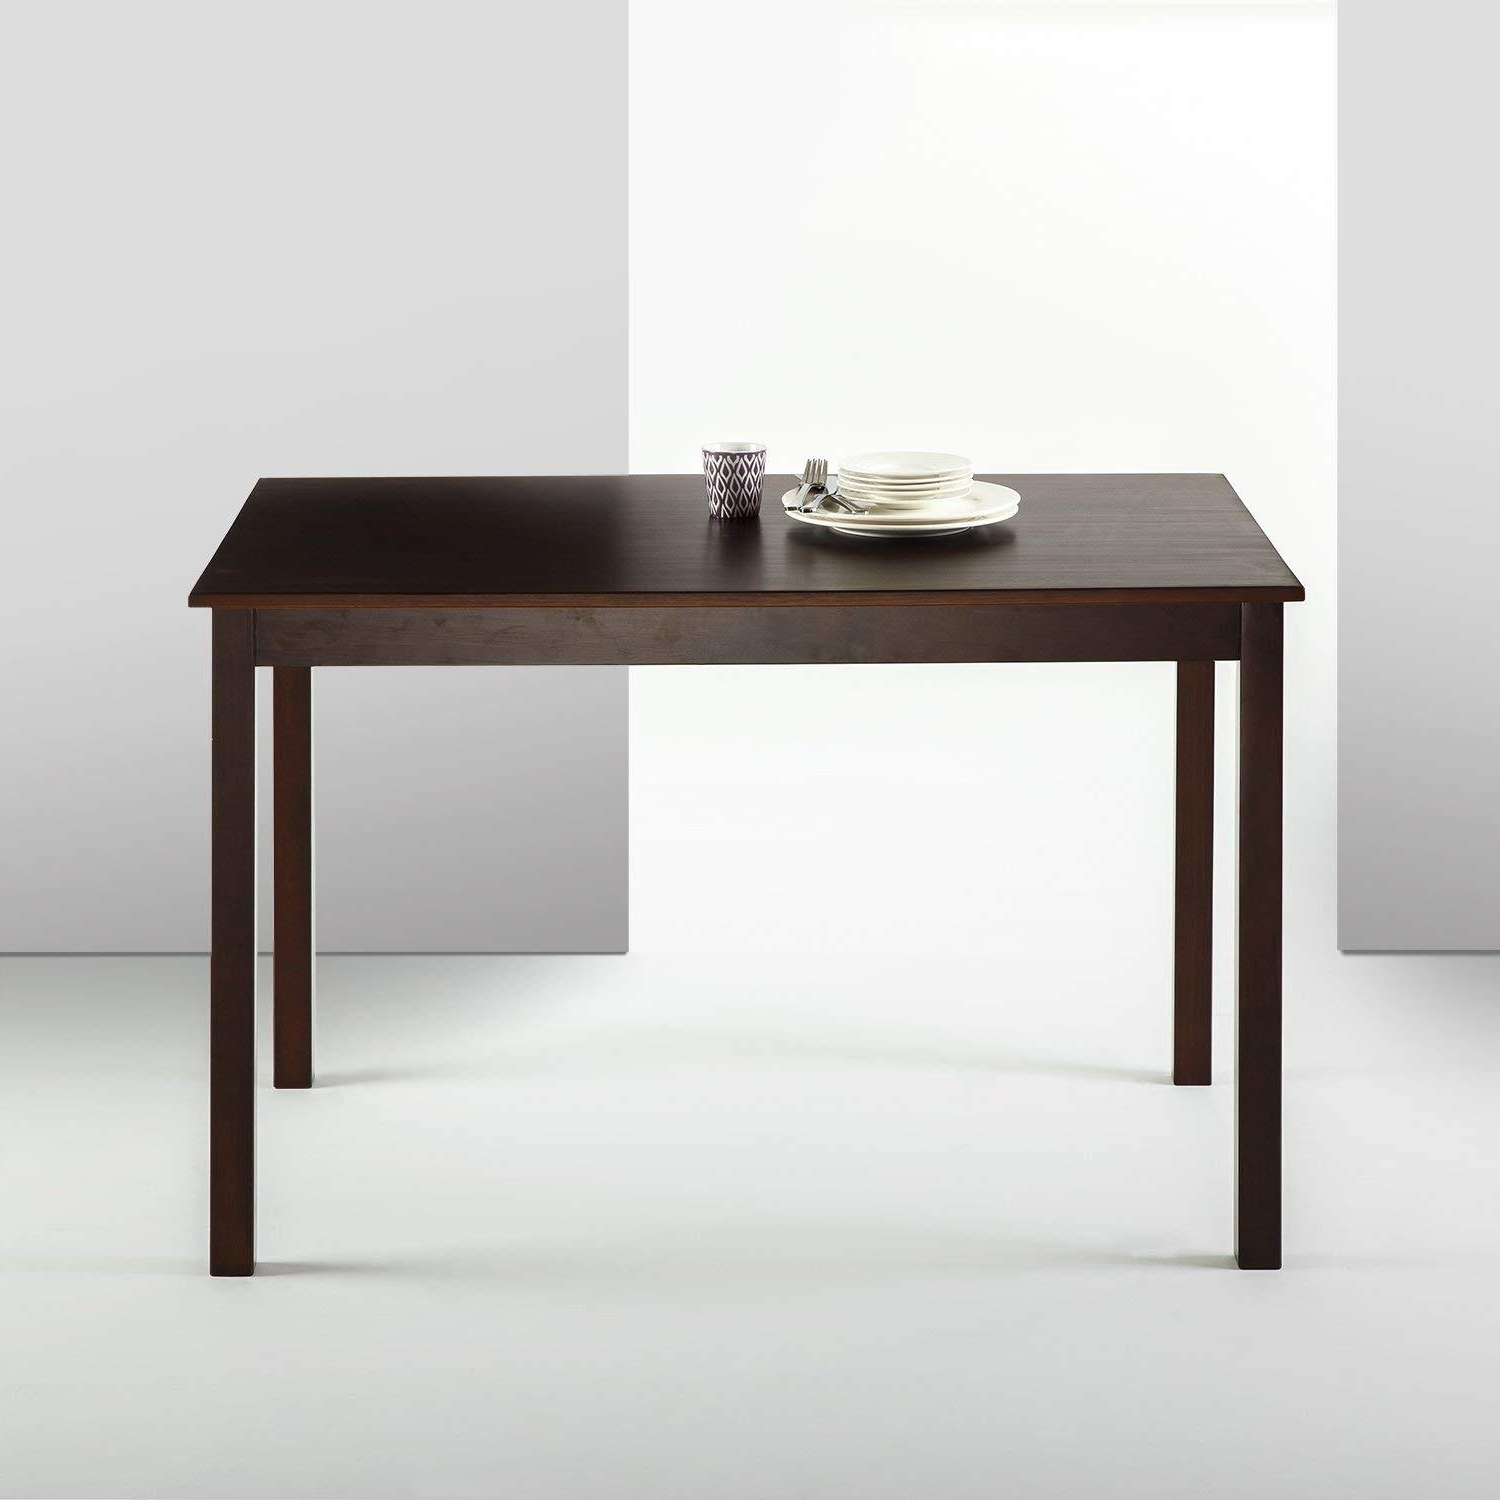 Home Dining Tables – Buy Home Dining Tables At Best Price In Inside Latest Valencia 72 Inch Extension Trestle Dining Tables (View 6 of 25)